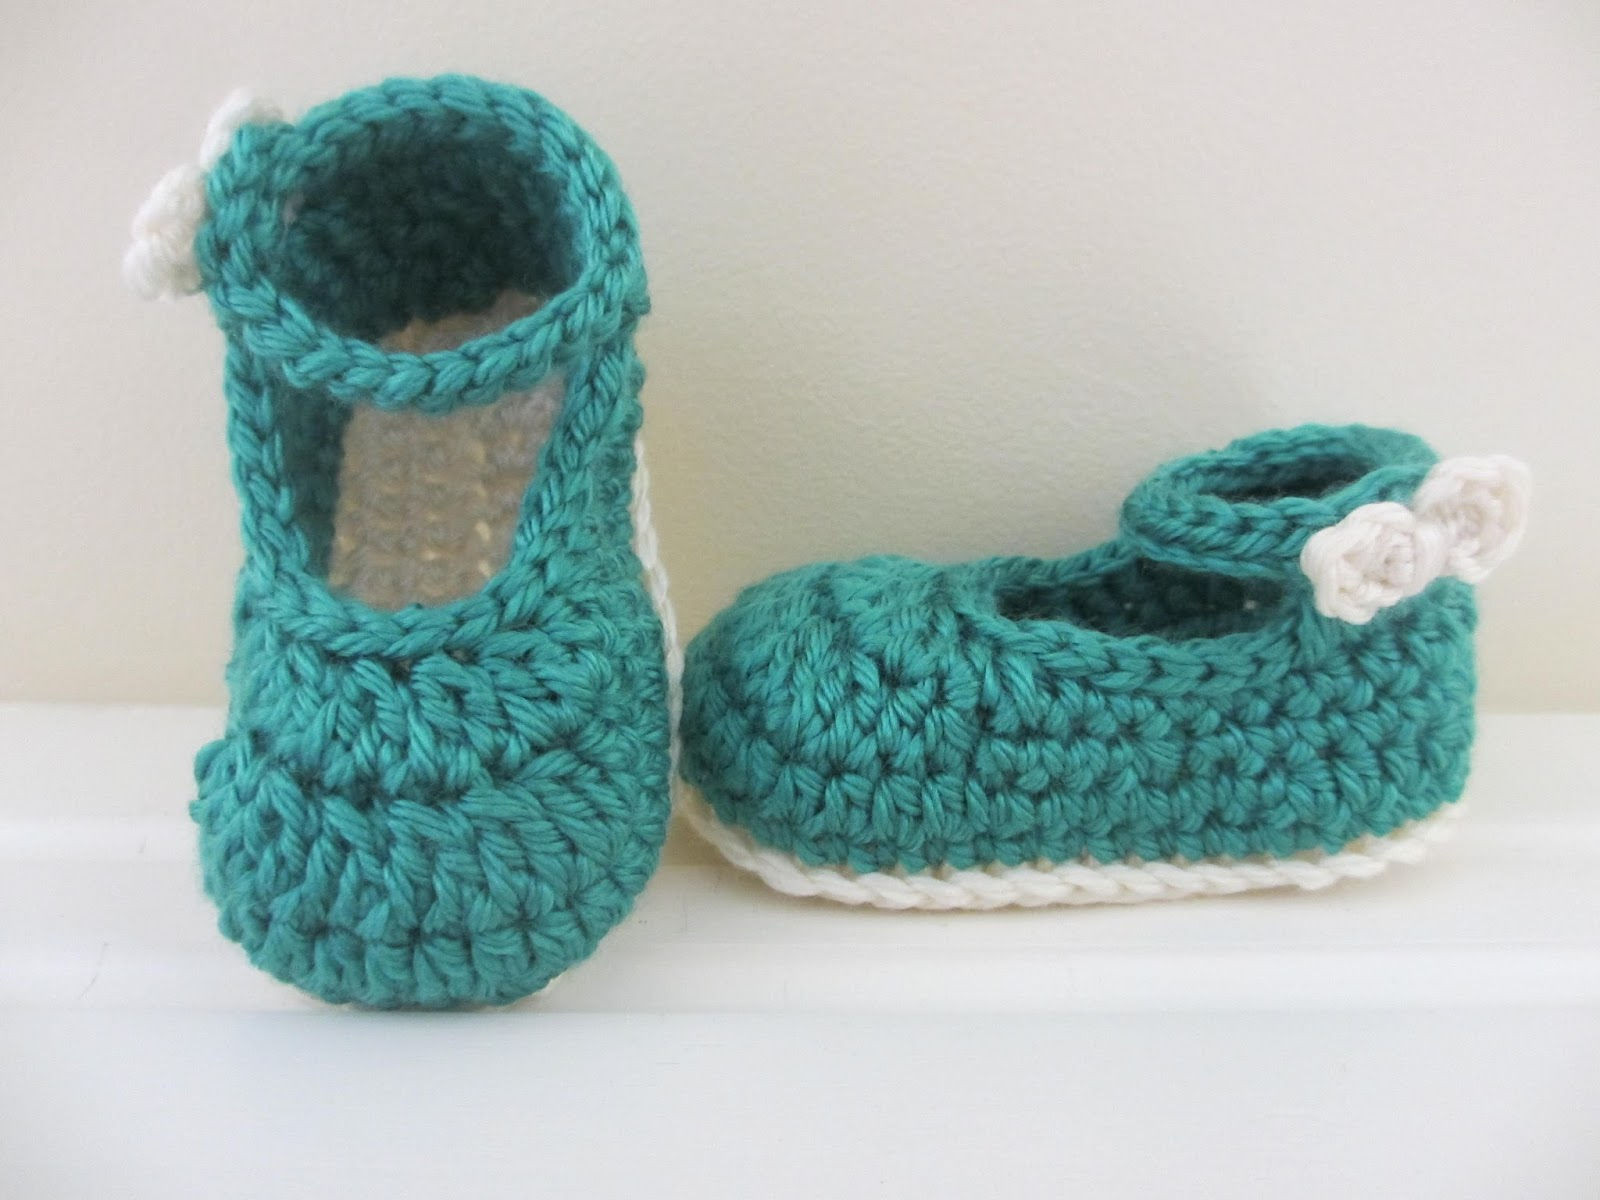 Crochet Booties Awesome 40 Adorable and Free Crochet Baby Booties Patterns Of Wonderful 43 Pics Crochet Booties